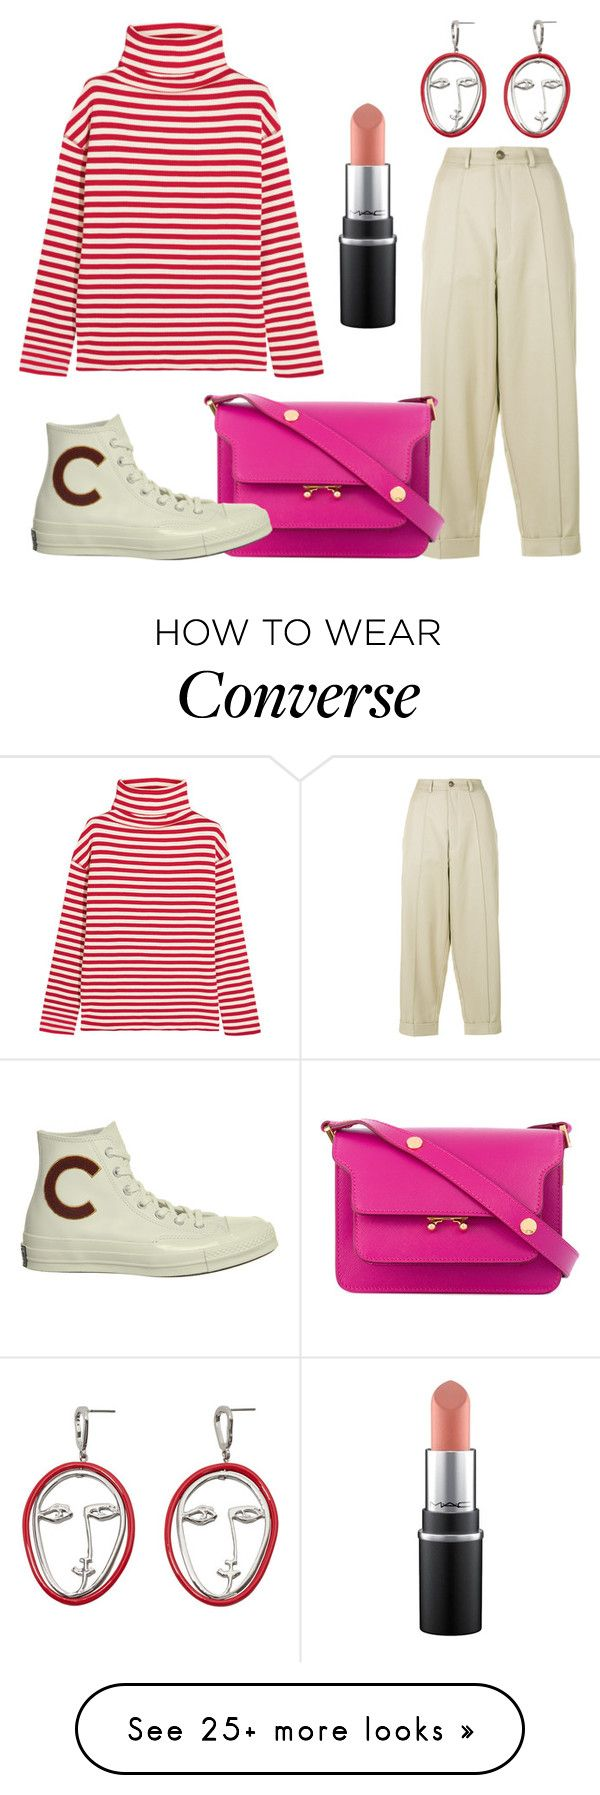 """Red & Pink"" by thevirgoviolet on Polyvore featuring Steve J & Yoni P, MANGO, Société Anonyme, Marni, Converse and stripes"